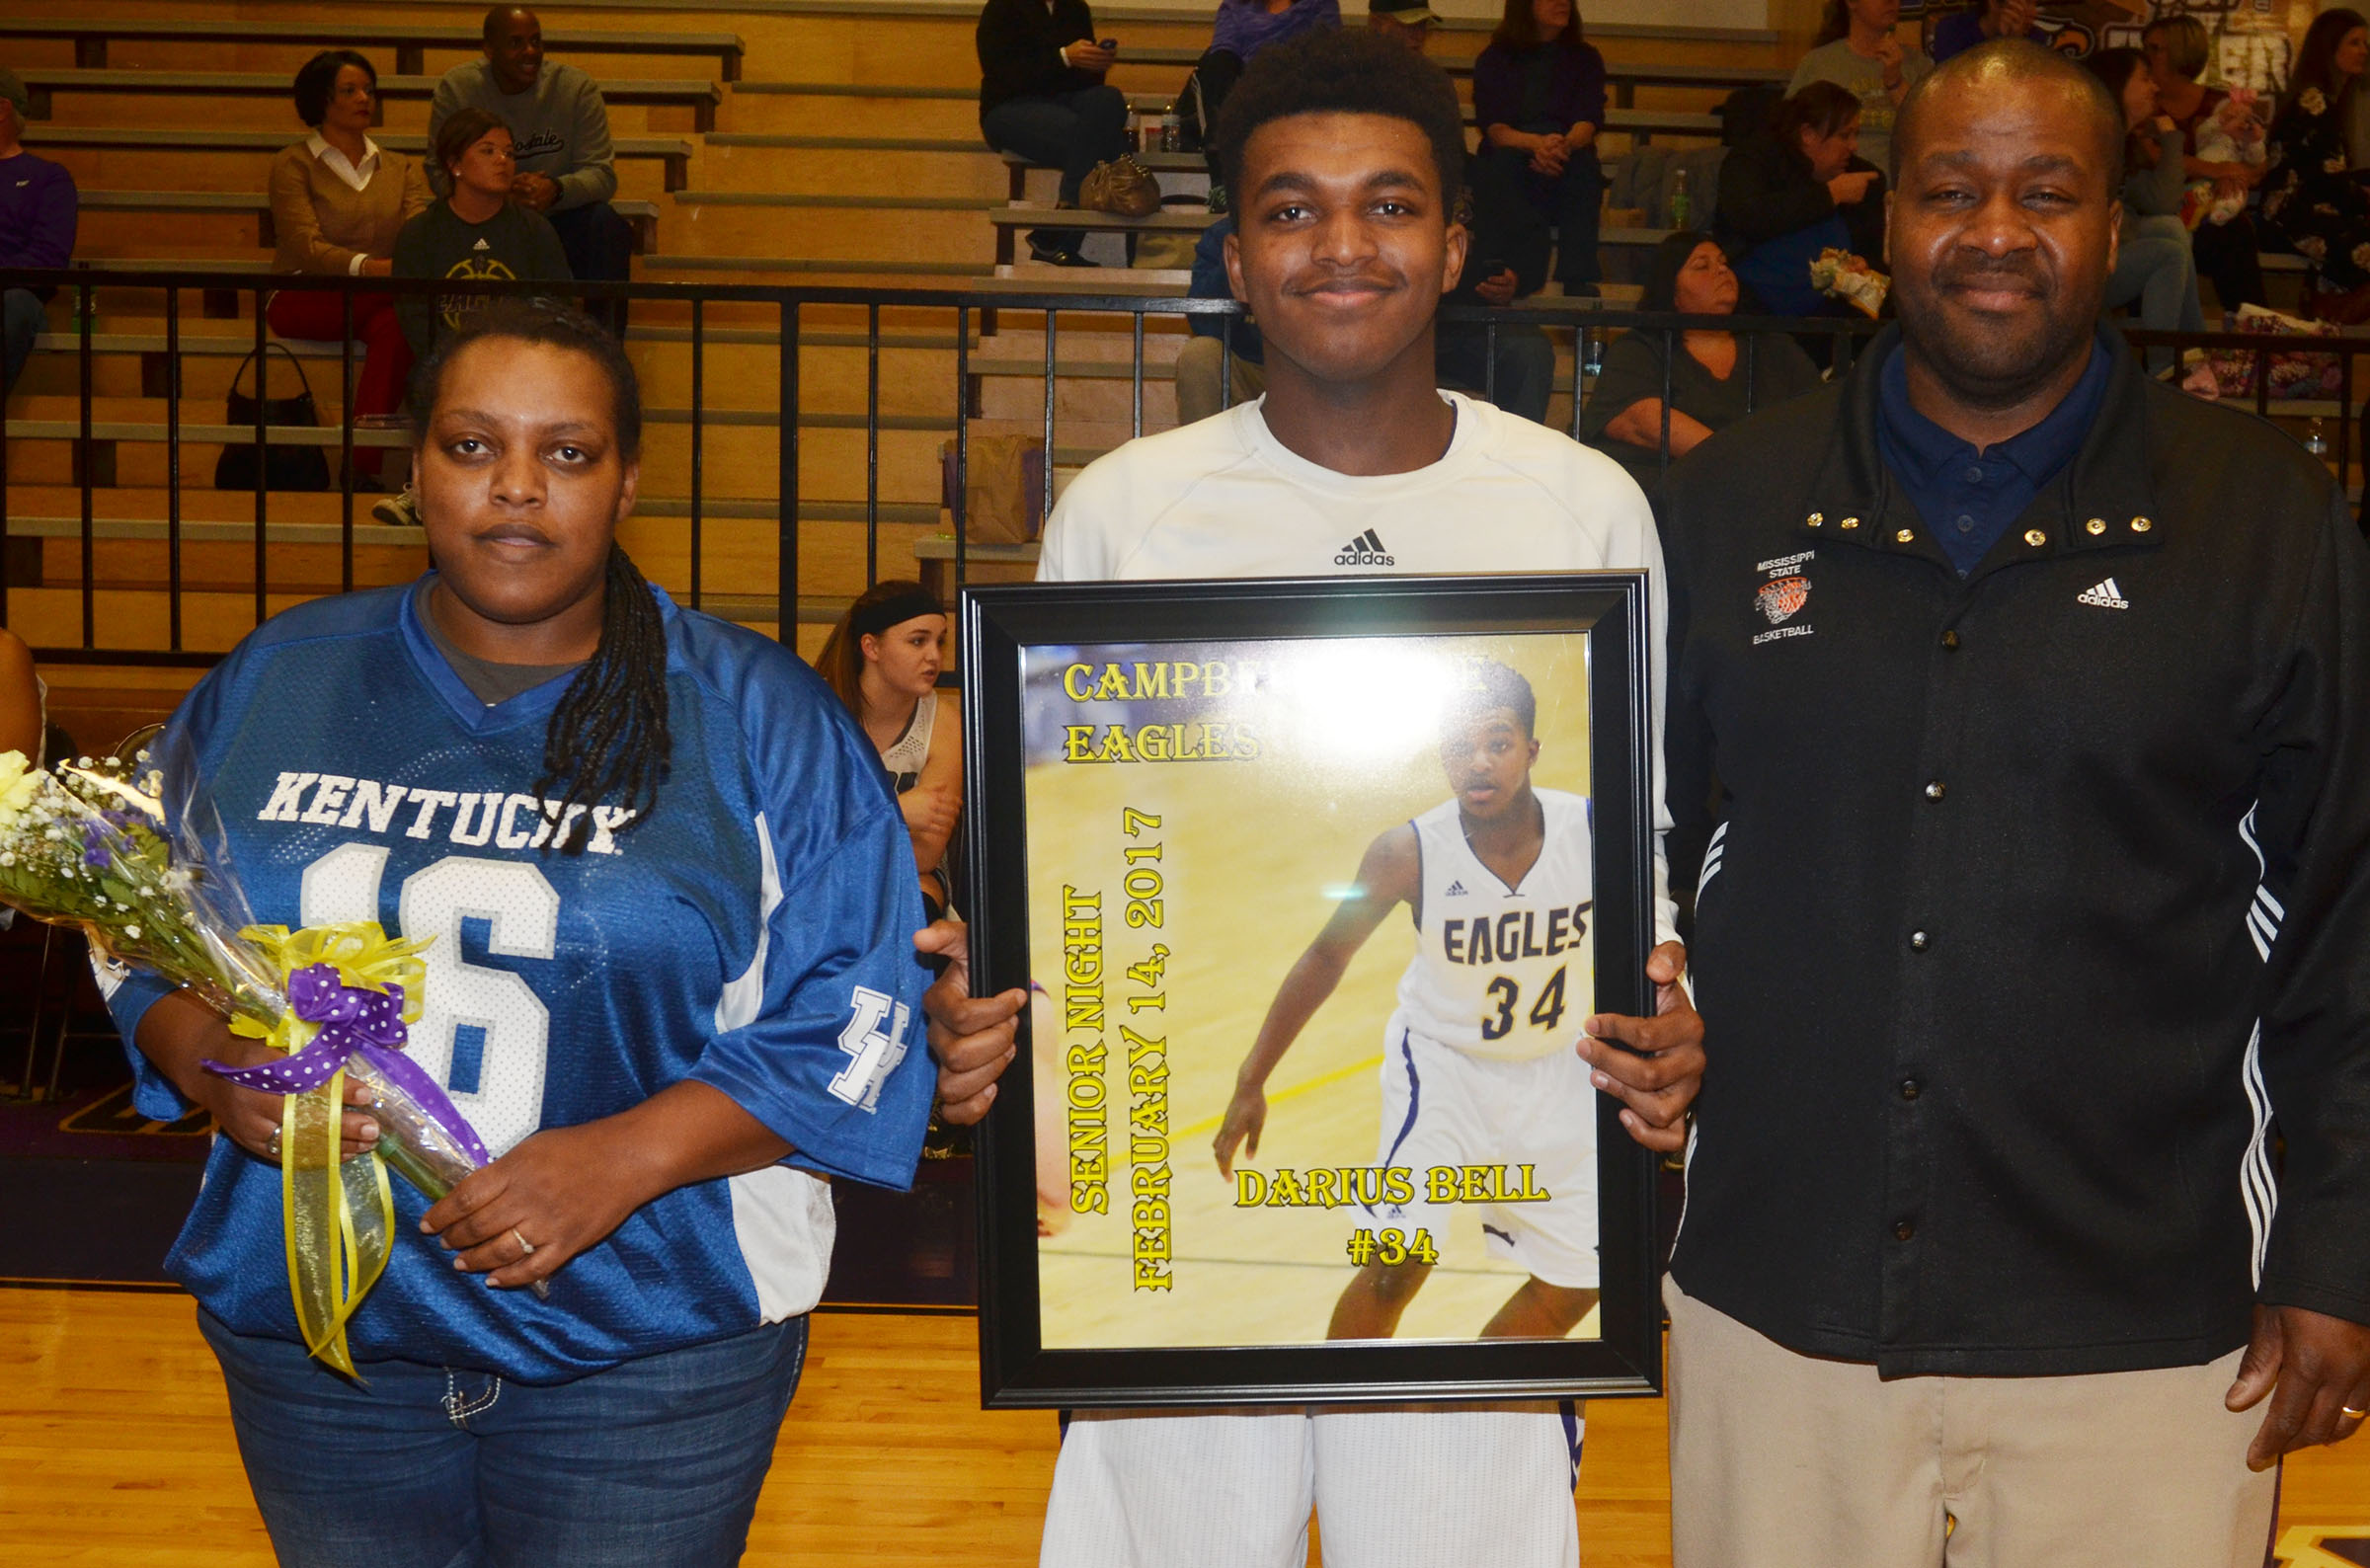 CHS senior boys' basketball player Darius Bell is honored. He is pictured with his parents, Jeanetta Smith and Anthony Bell.